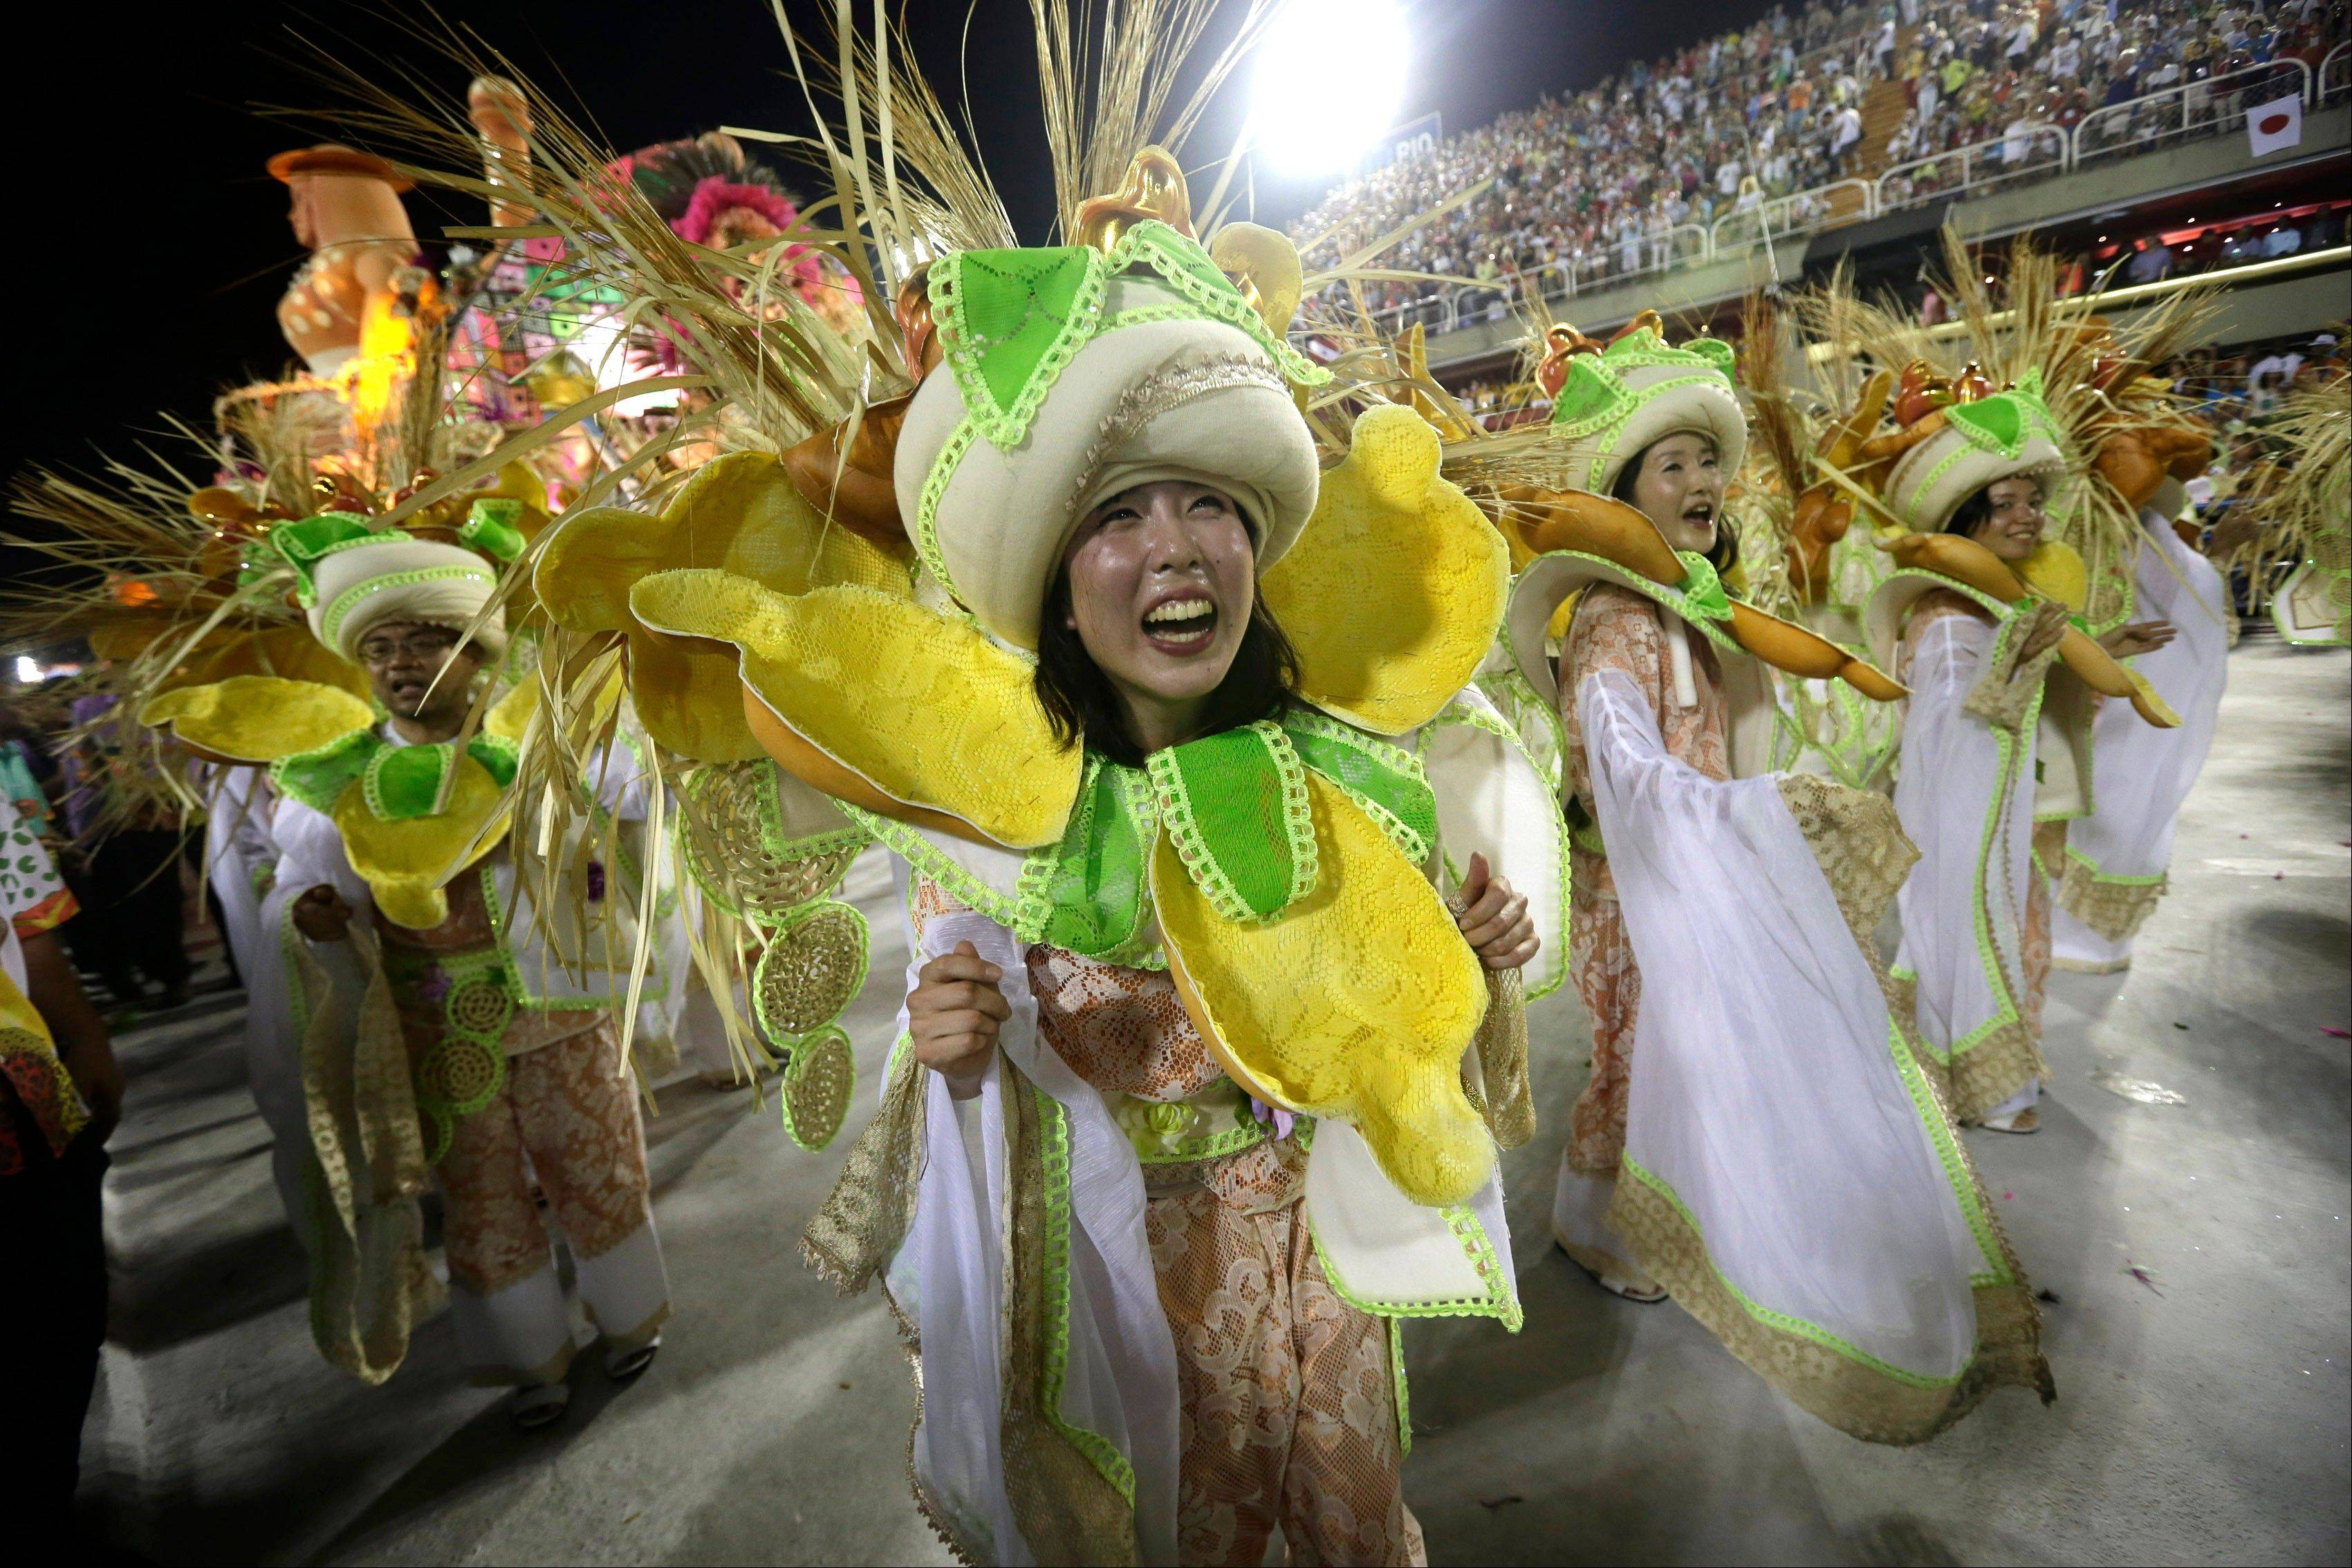 "Japanese performers from the Mangueira samba school parade during carnival celebrations at the Sambadrome in Rio de Janeiro, Brazil, Tuesday. While non-Brazilians have long shelled out hundreds of dollars for the right to dress up in over-the-top costumes and boogie in Rio's samba school parades, few in the so-called ""alas dos gringos,"" or ""foreigners' wings,"" know how to dance the samba well, bopping along goofily in the parades and waving at the crowds of spectators."